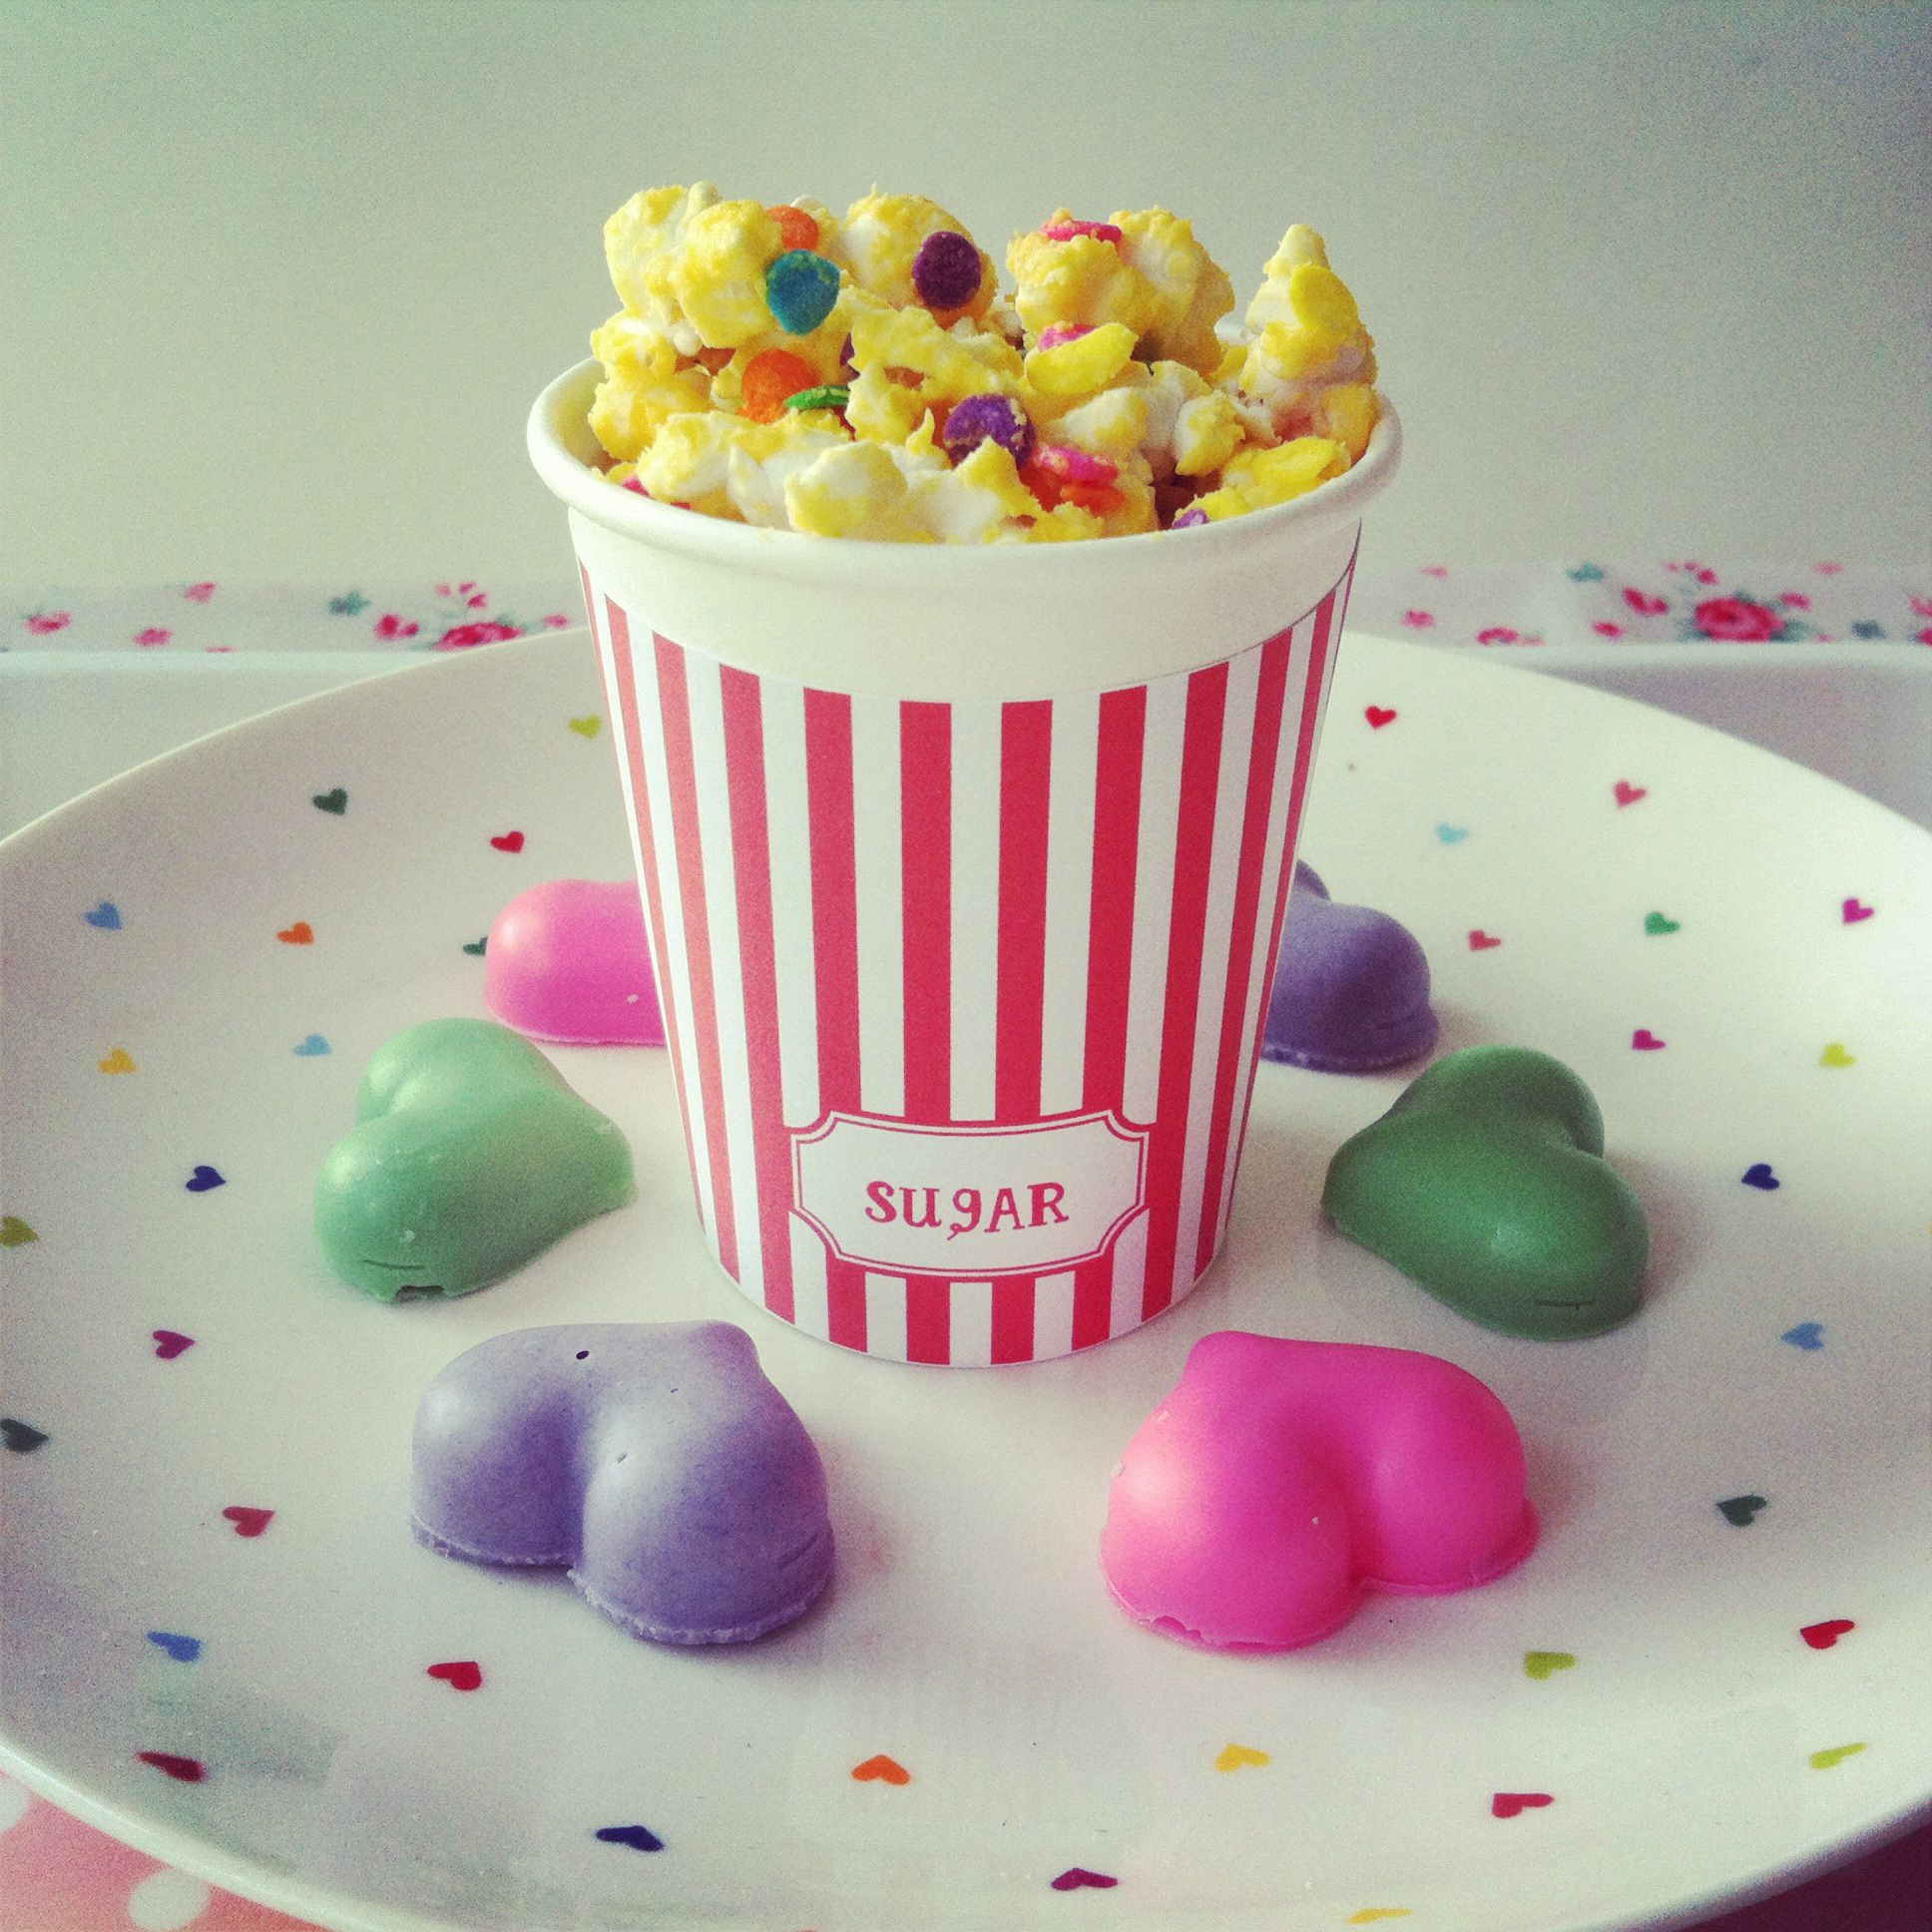 Chloe asked if I could make confetti popcorn and fruit flavored chocolate again. next weekend? maybe.